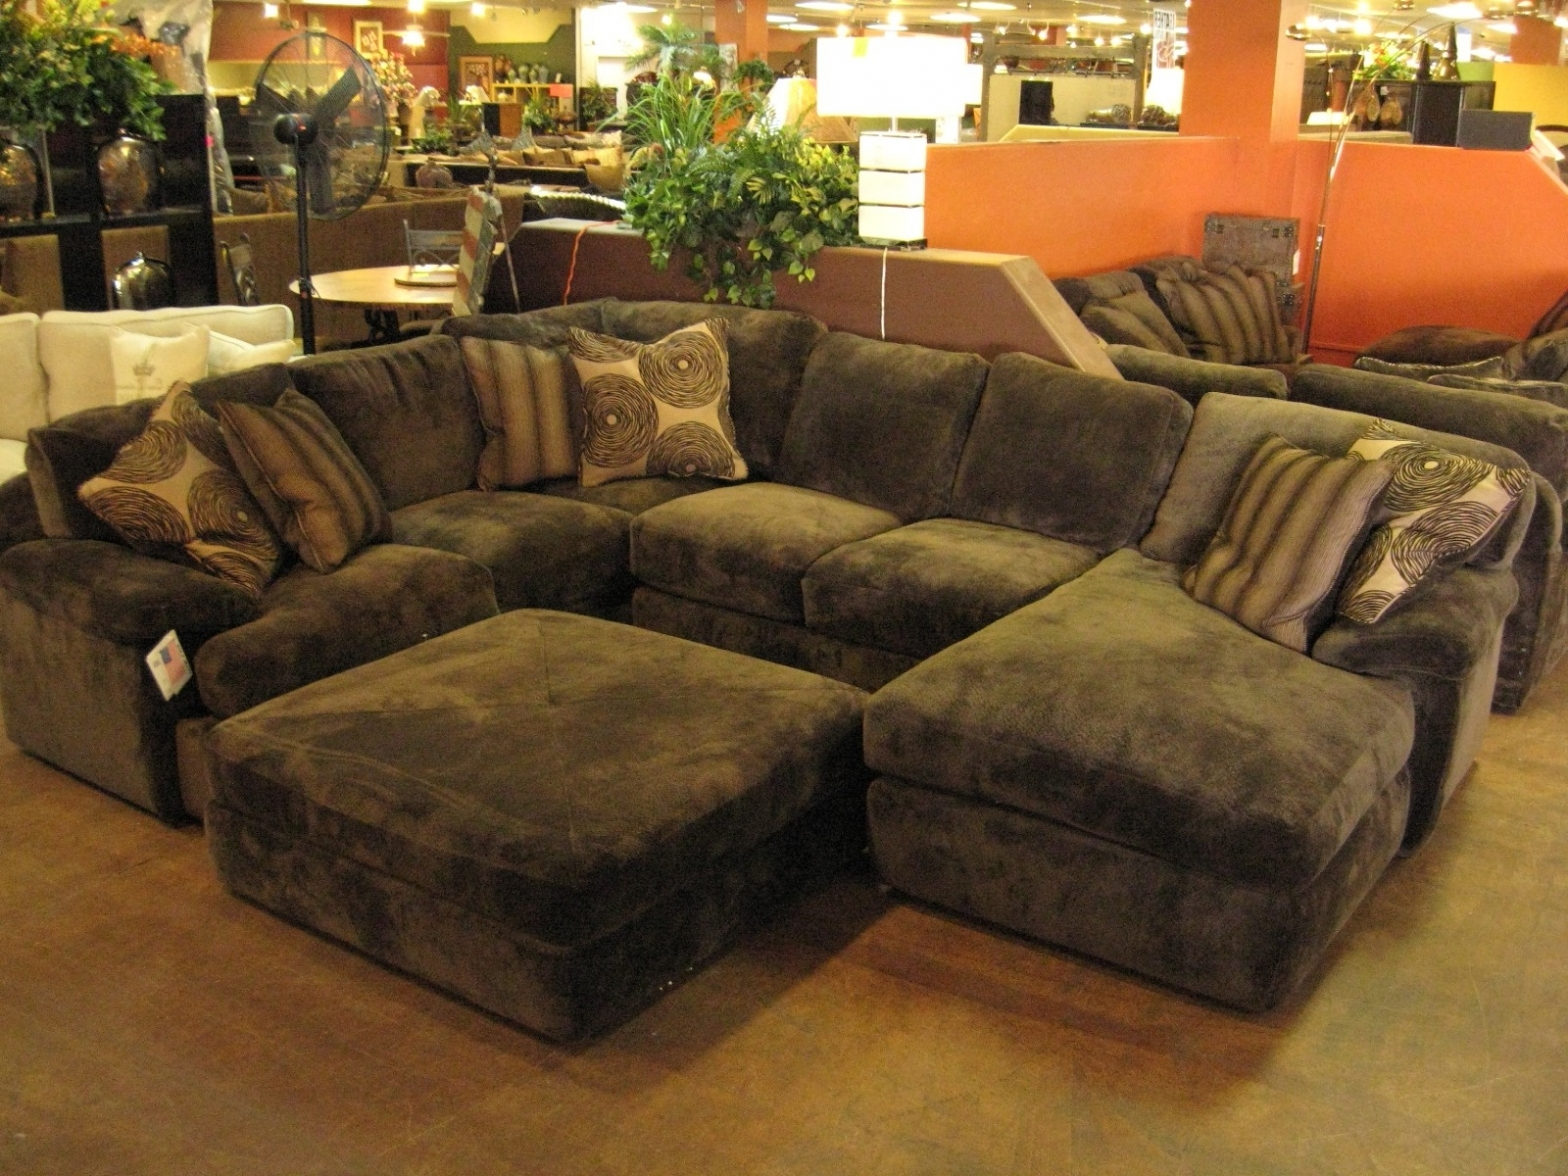 Recent The Brick Sectional Sofas Intended For Furniture: Awesome Amazon Sectional Sofas 77 On The Brick (View 5 of 15)